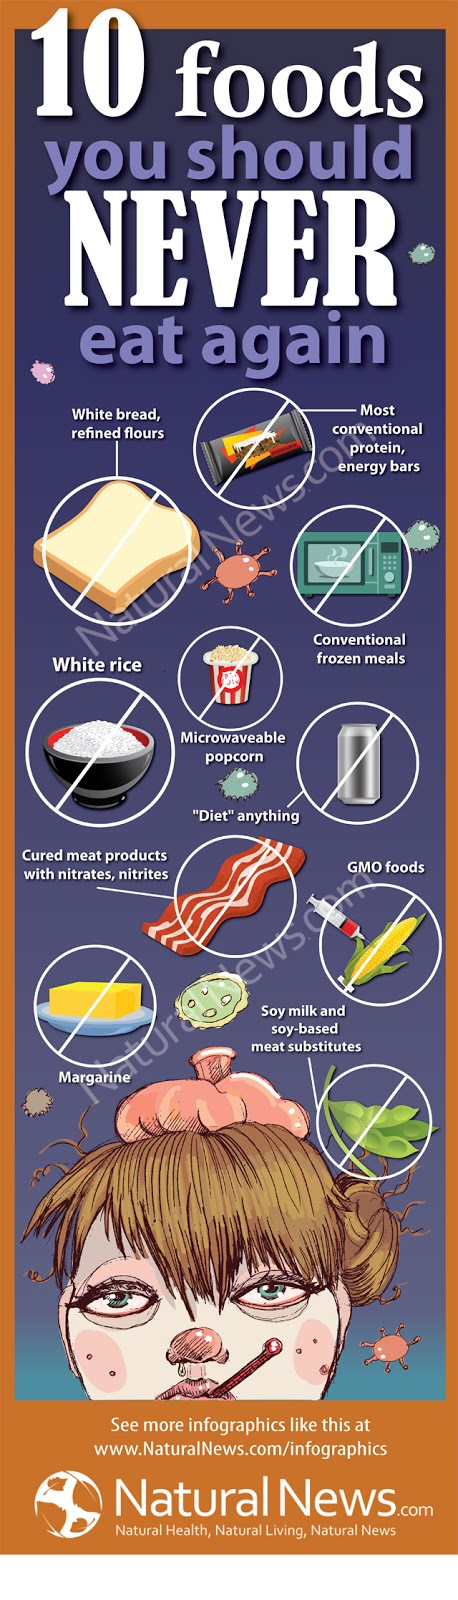 Infographic-Ten-Foods-to-Never-Eat-Again